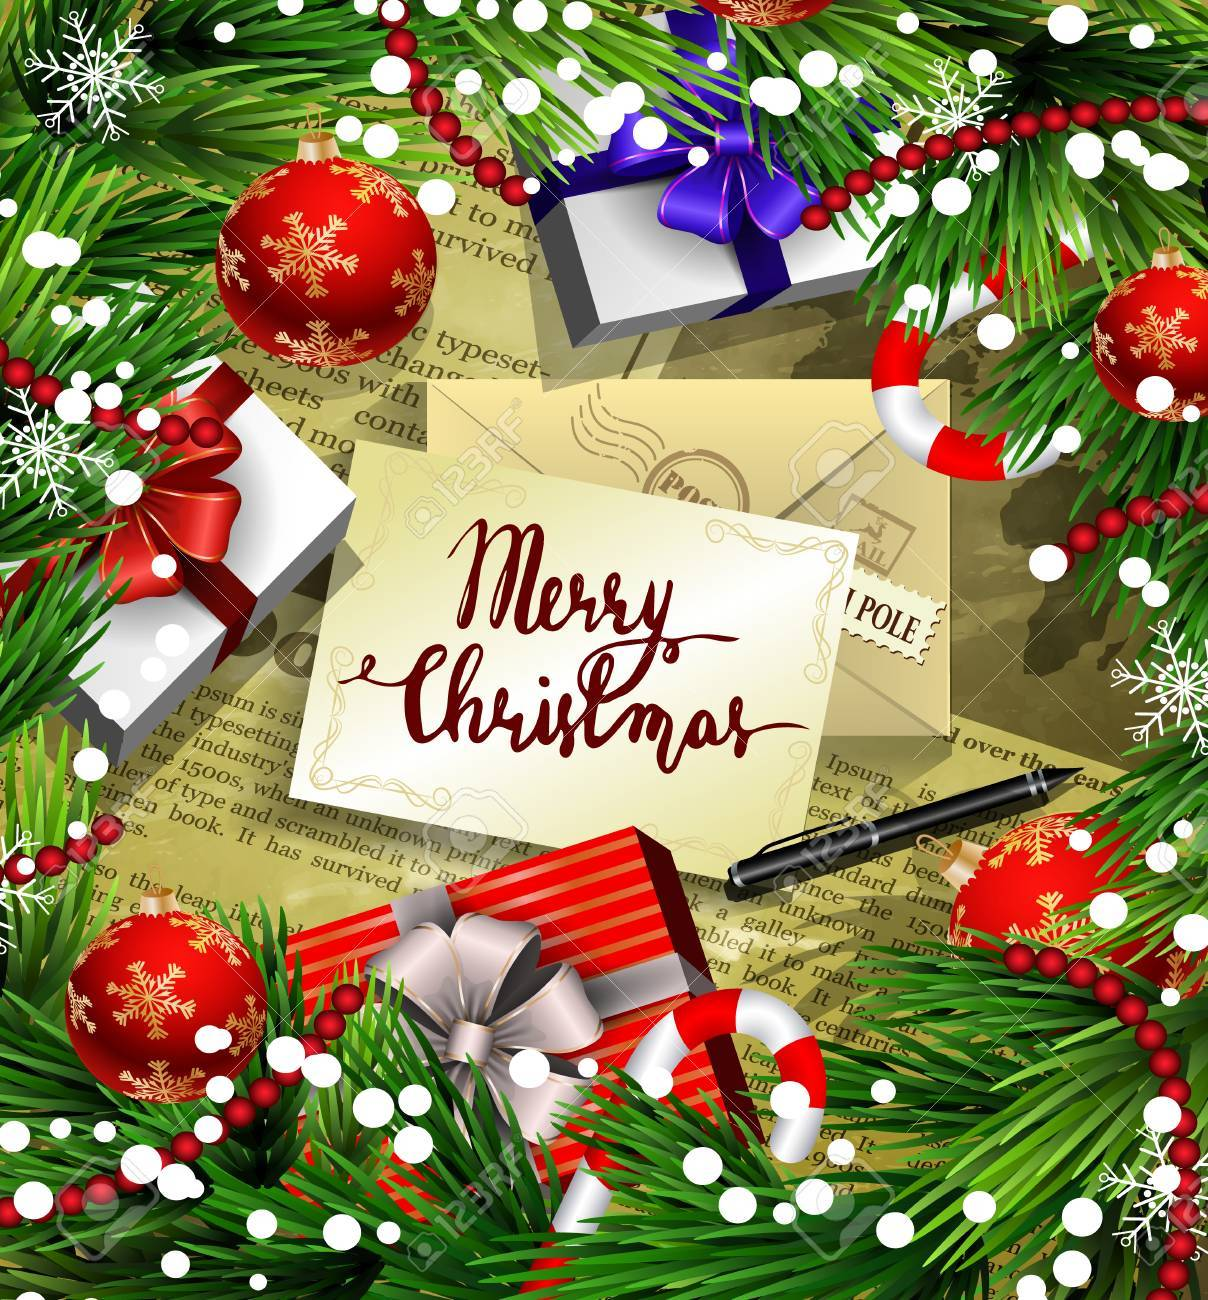 Christmas New Year Design Old News Paper Background With Christmas